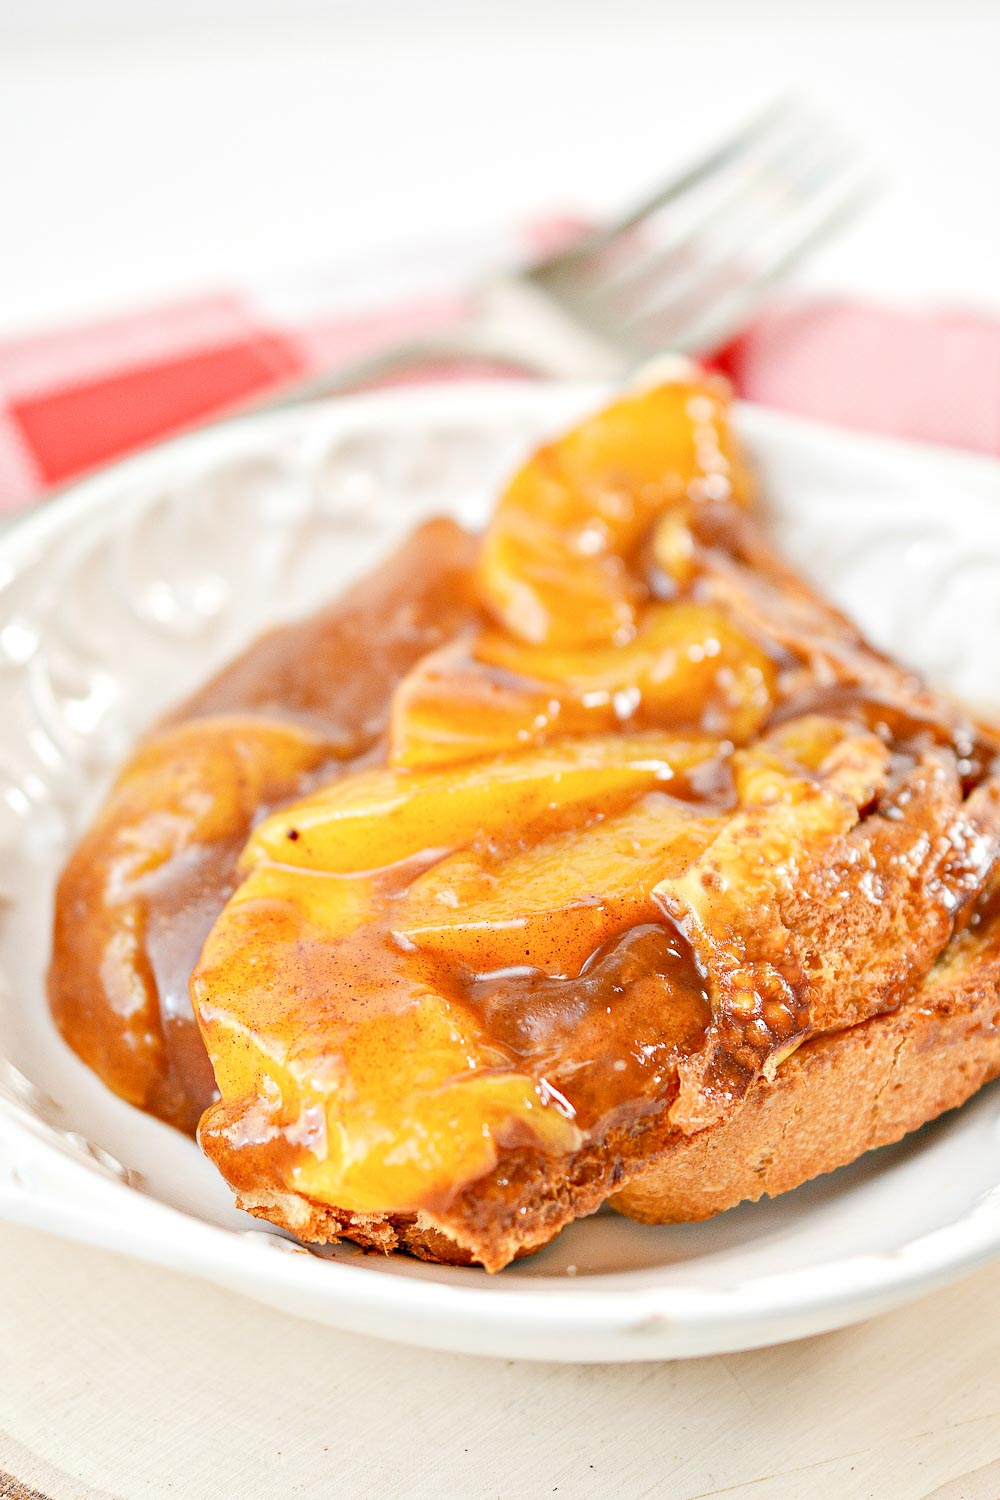 Christmas in the Summer? This Peach Pie French Toast Casserole can be prepared overnight and just popped in the oven in the morning. It's a good recipe to serve to a crowd or brunch!